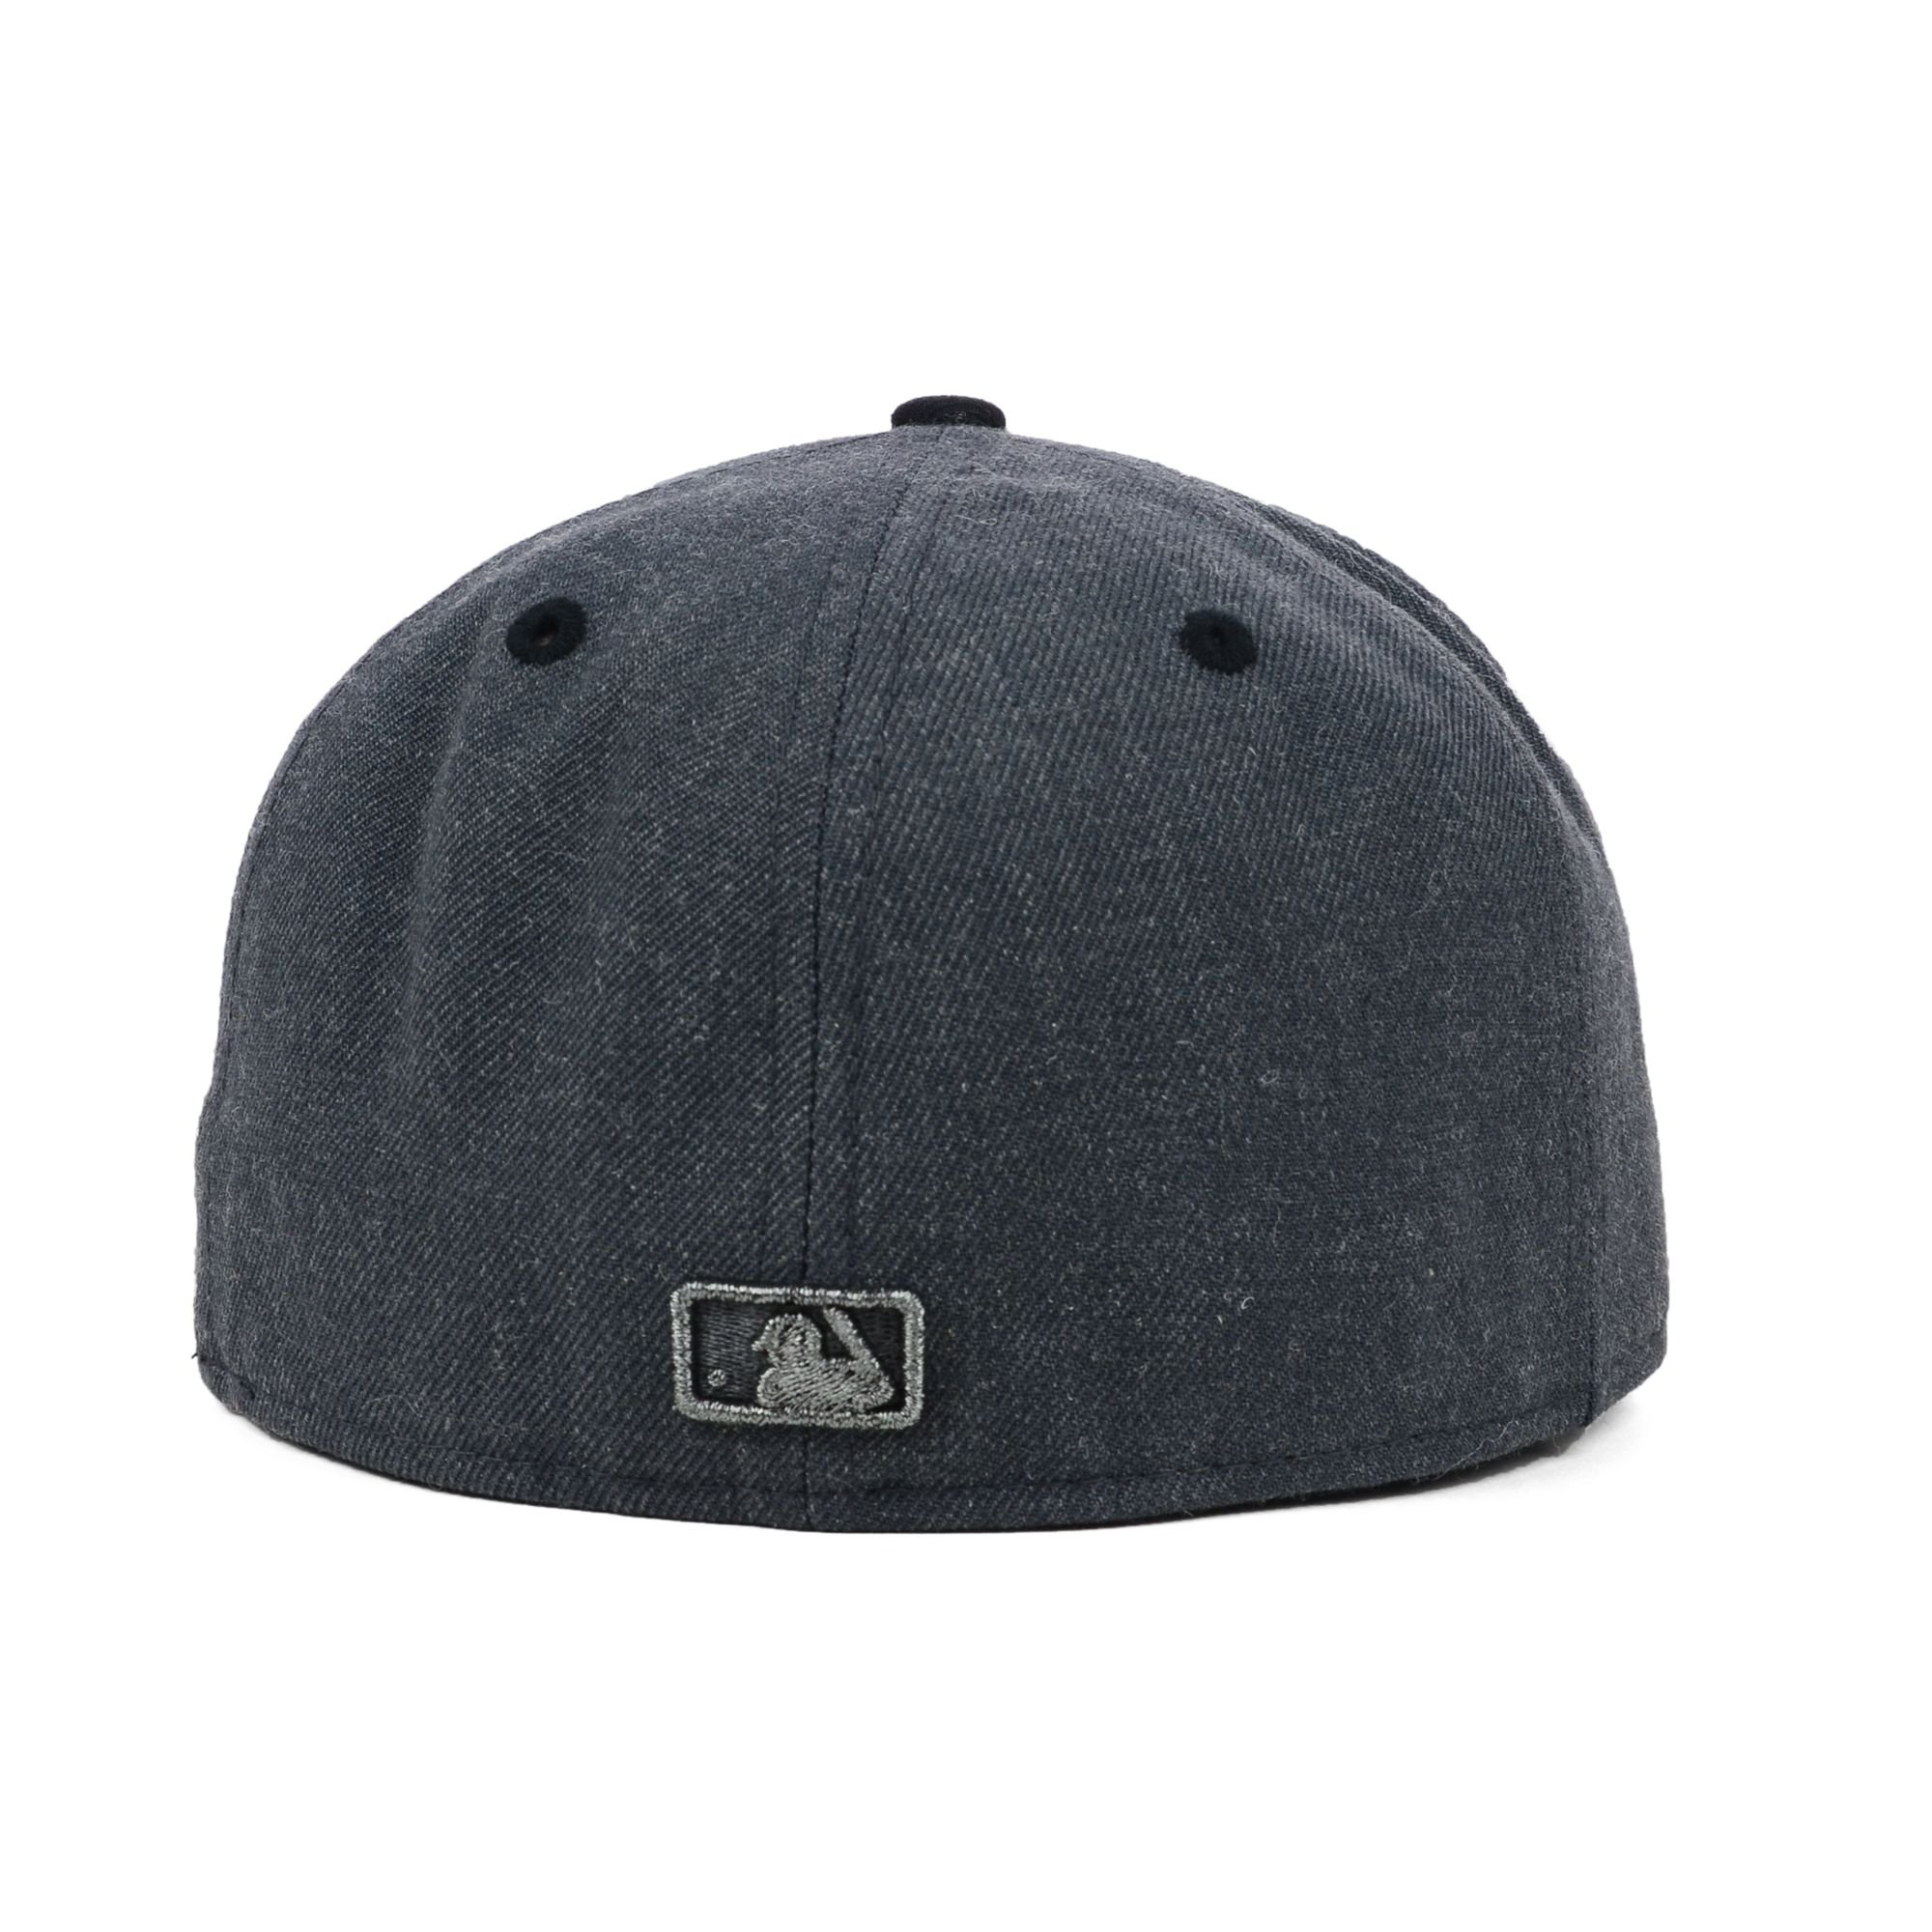 45b28f45c1ea0 Lyst - Ktz Chicago Cubs Mlb Graphite Heather 59fifty Cap in Gray for Men